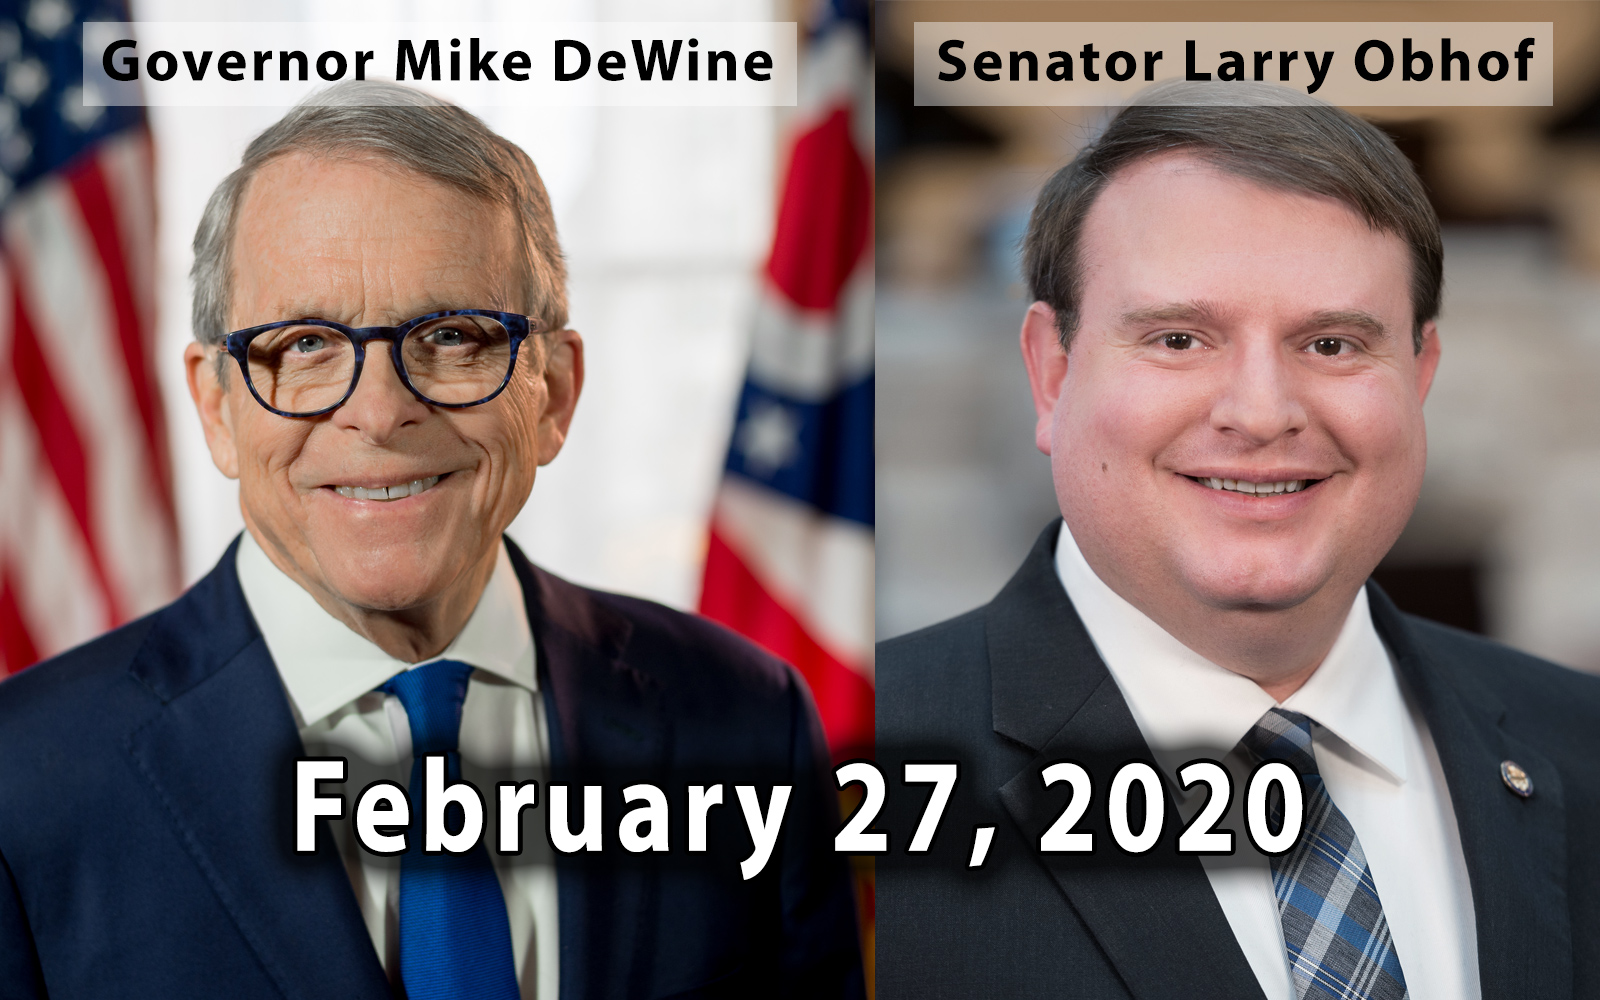 MCCC Welcomes Governor DeWine